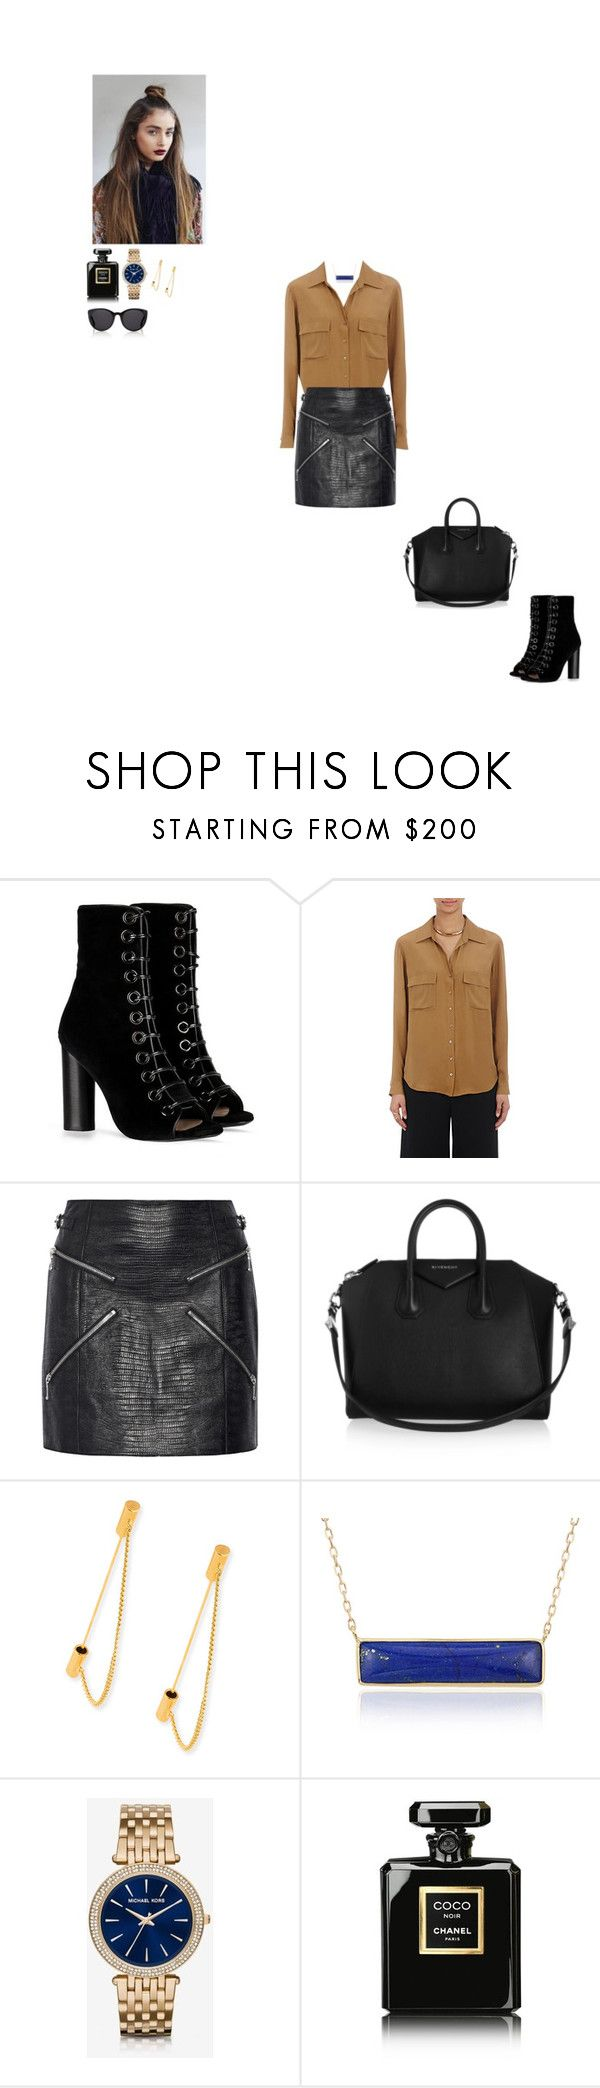 """""""cobalt"""" by lavenderblush ❤ liked on Polyvore featuring Barbara Bui, L'Agence, Alexander Wang, Givenchy, Balenciaga, Blue Nile, Michael Kors, Chanel and Finlay & Co."""